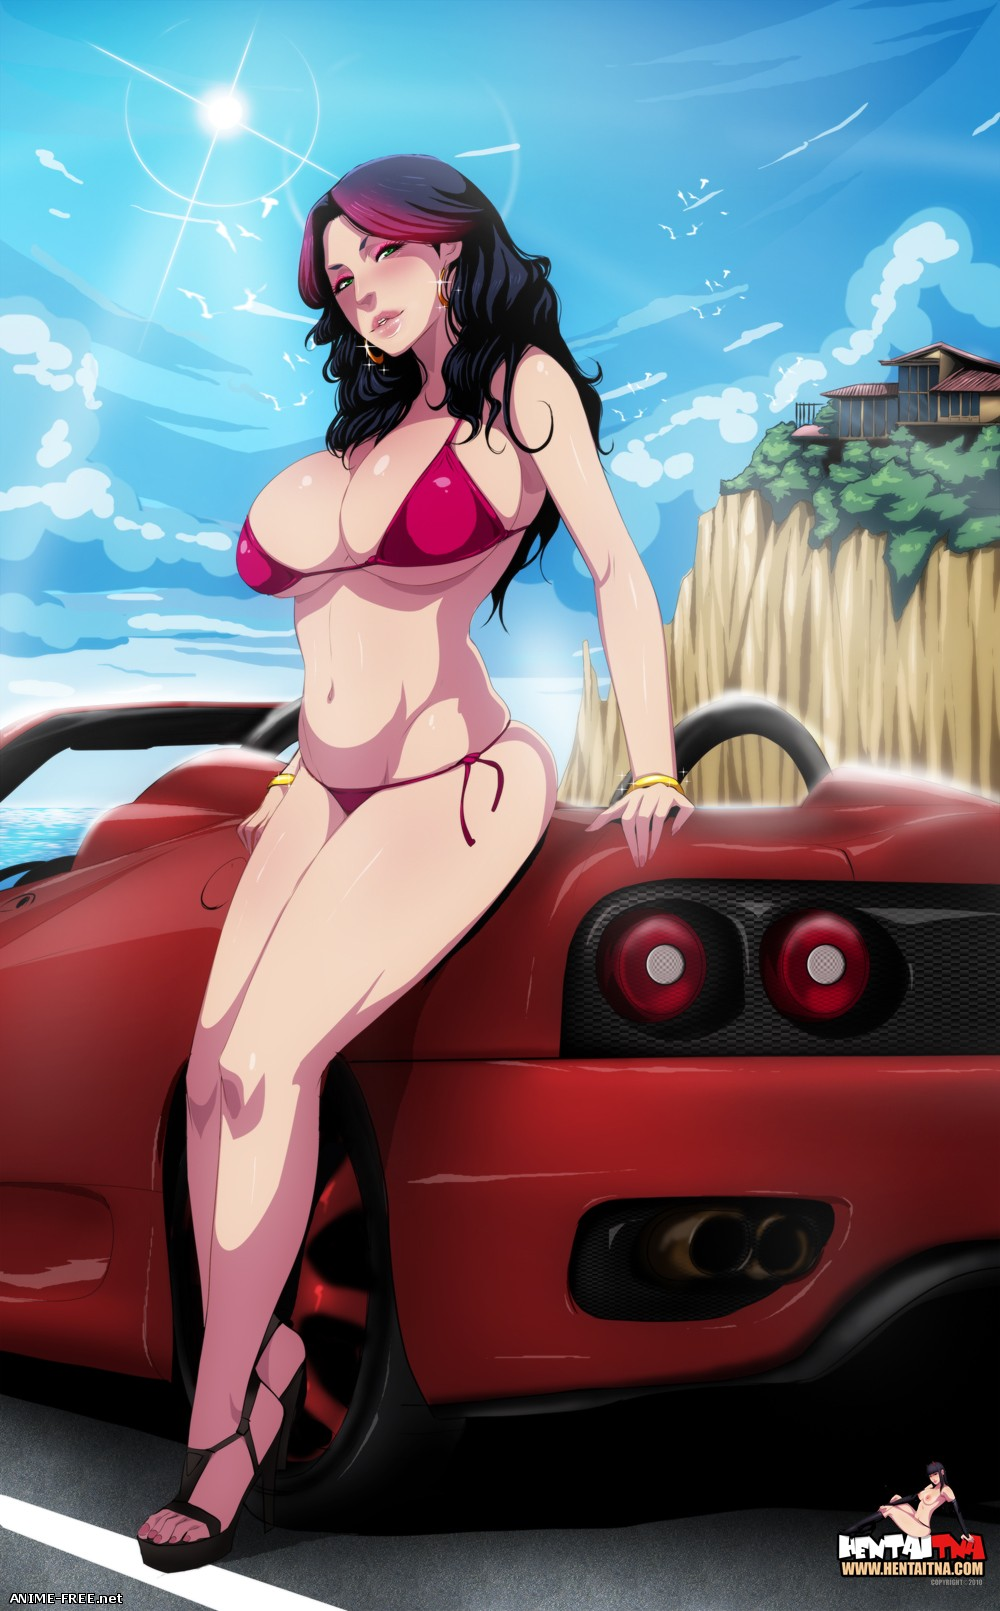 (Collection) Hardinkgirls, HentaiTna [Uncen] [JPG,PNG,GIF] Hentai ART